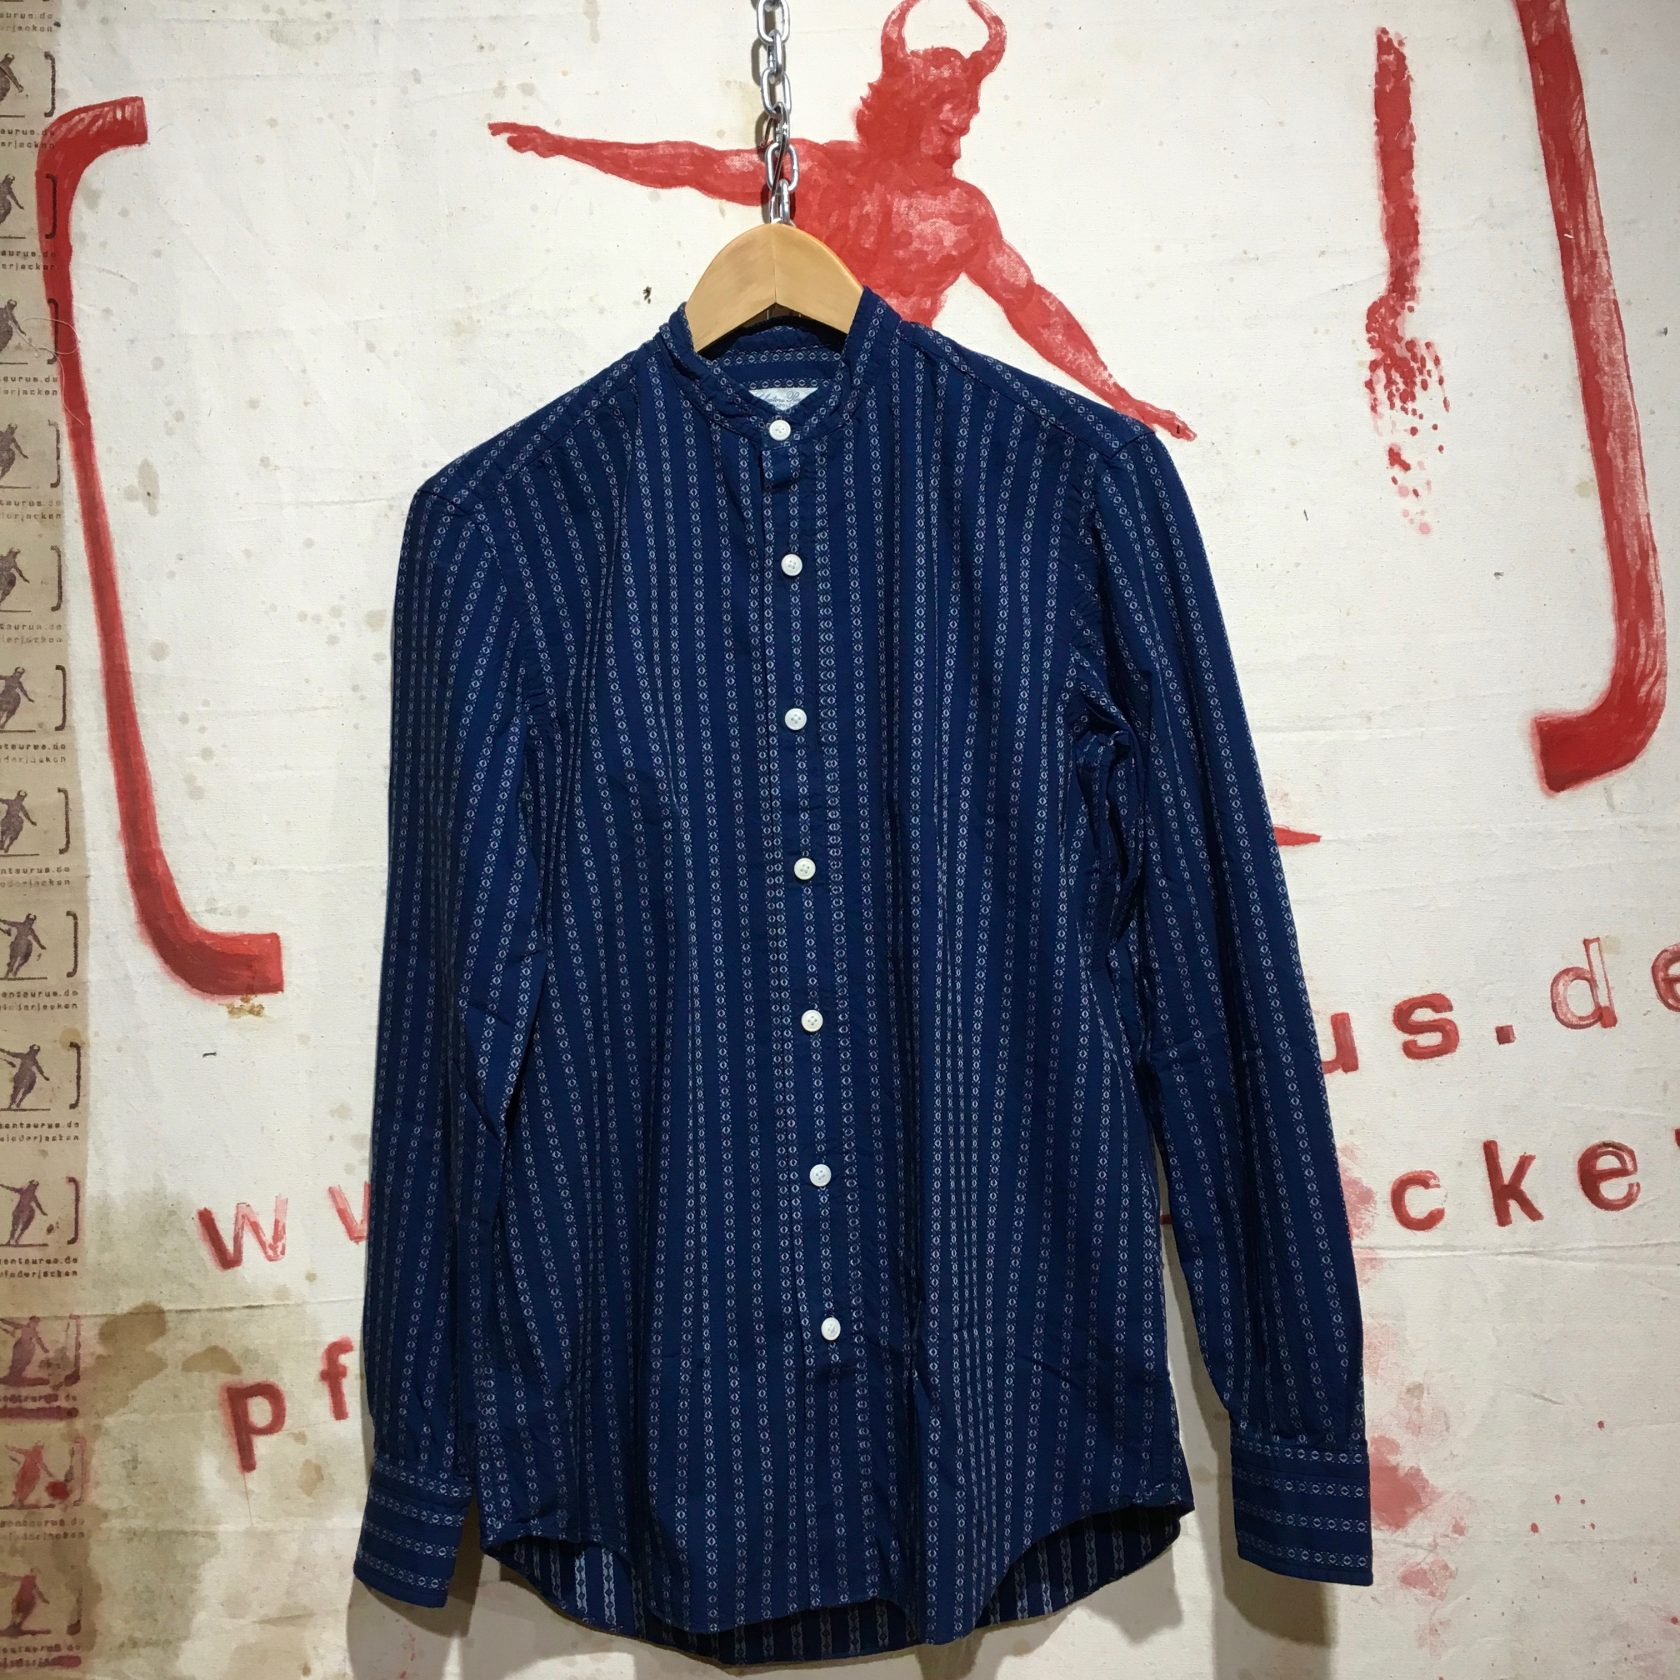 Piccolo AP/HDA striped shirt blue